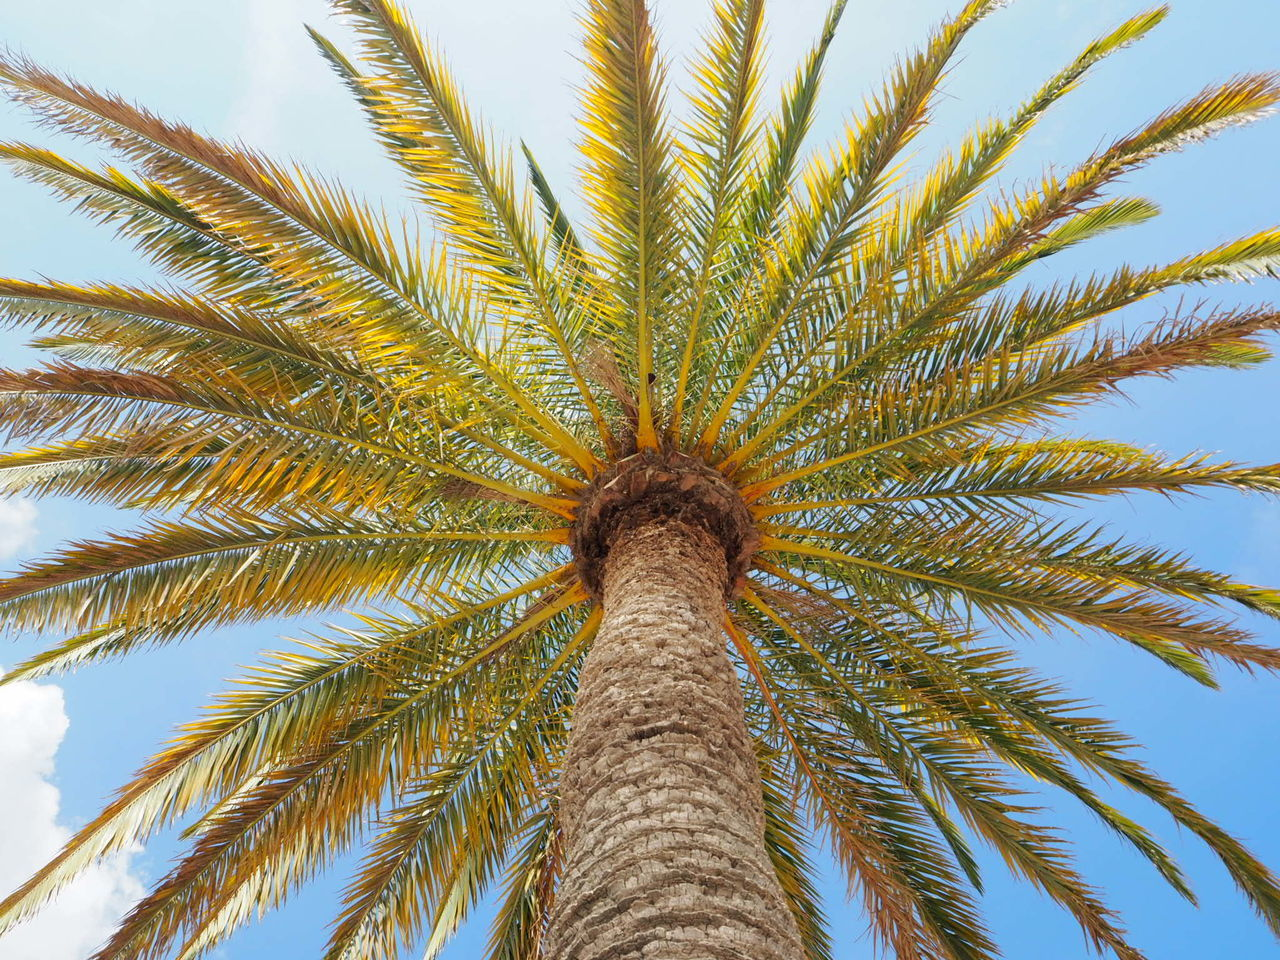 Summer in Paris - you wouldn't believe that this is in the Jardin de Luxembourg in Paris and not on the Fidjis. Palm Tree Tree Low Angle View Growth Nature No People Sky Outdoors Tree Trunk Beauty In City France Paris Welcomeweekly EyeEmNewHere Nature In Paris Jardin Du Luxembourg Summer Sunshine EyeEmNewHere Background Wallpaper